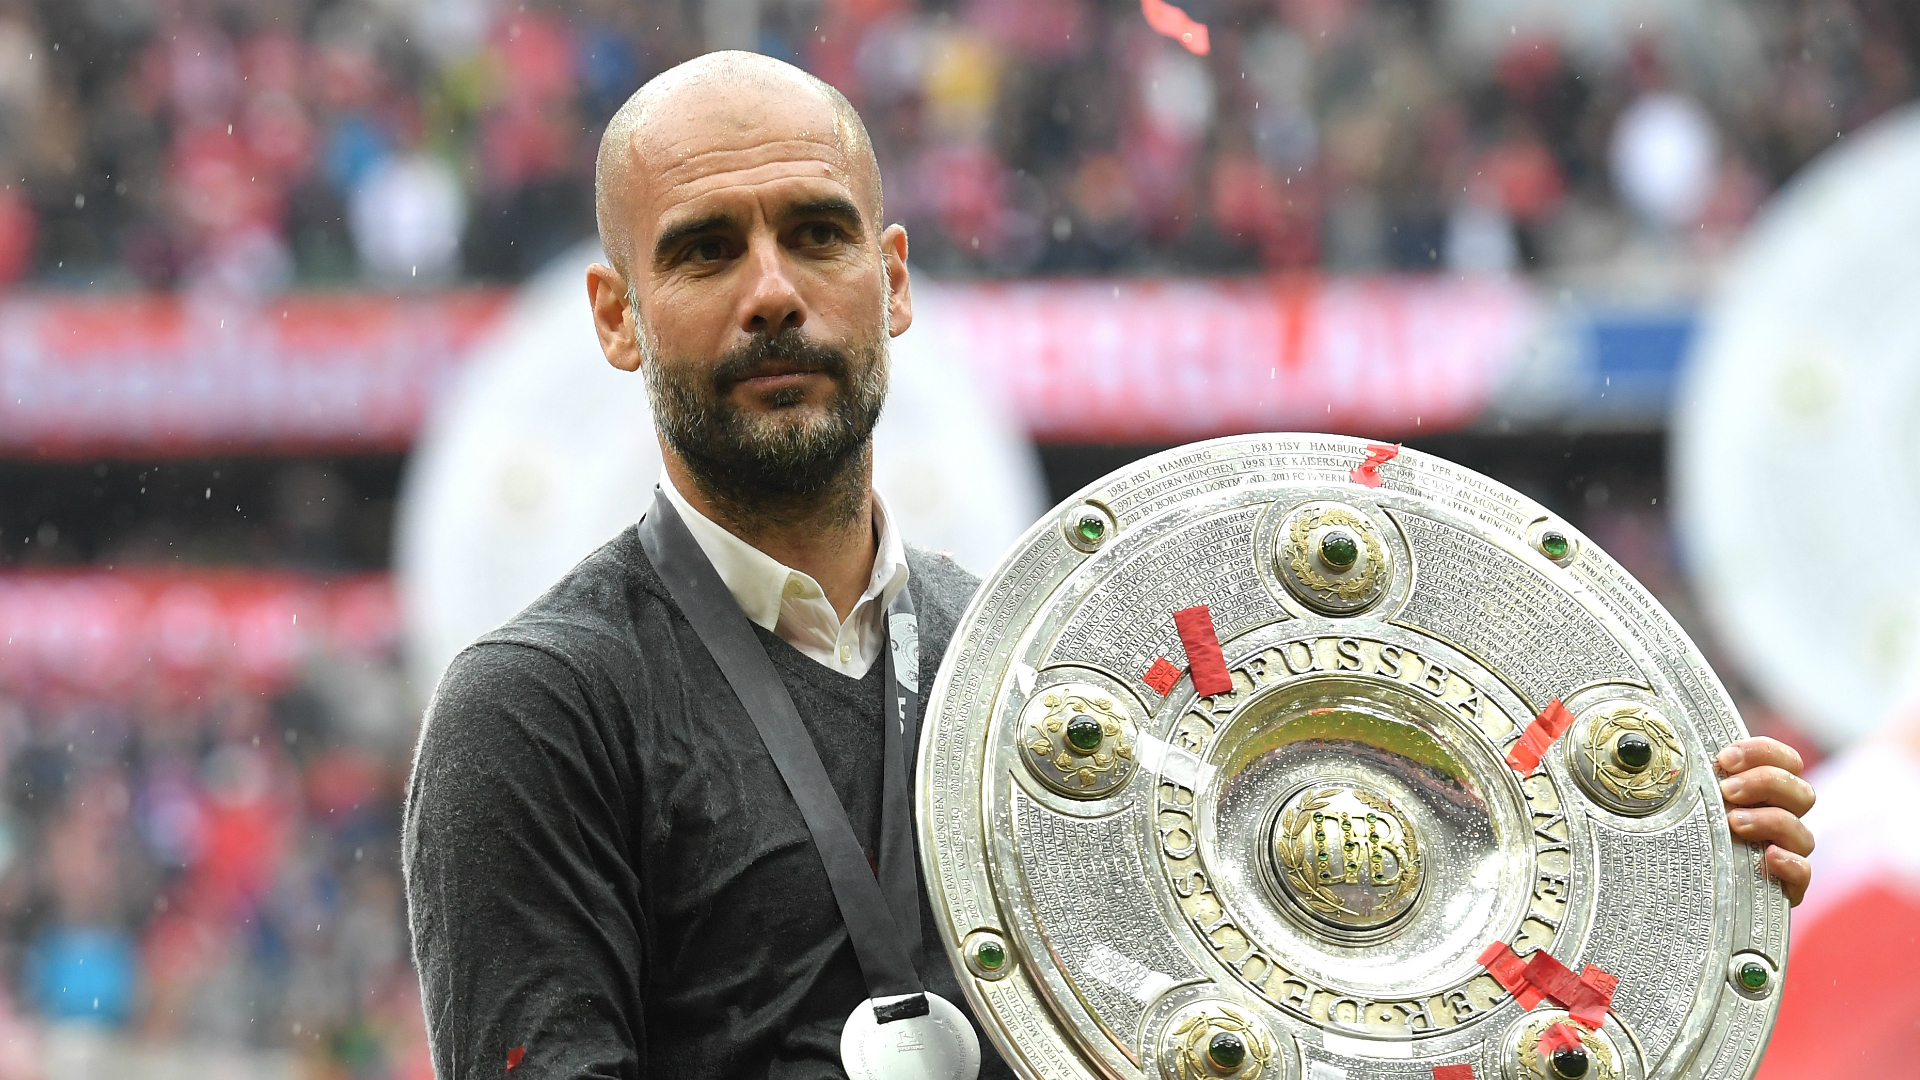 Bayern Munich president targets top head coach amid links to 'great' Guardiola